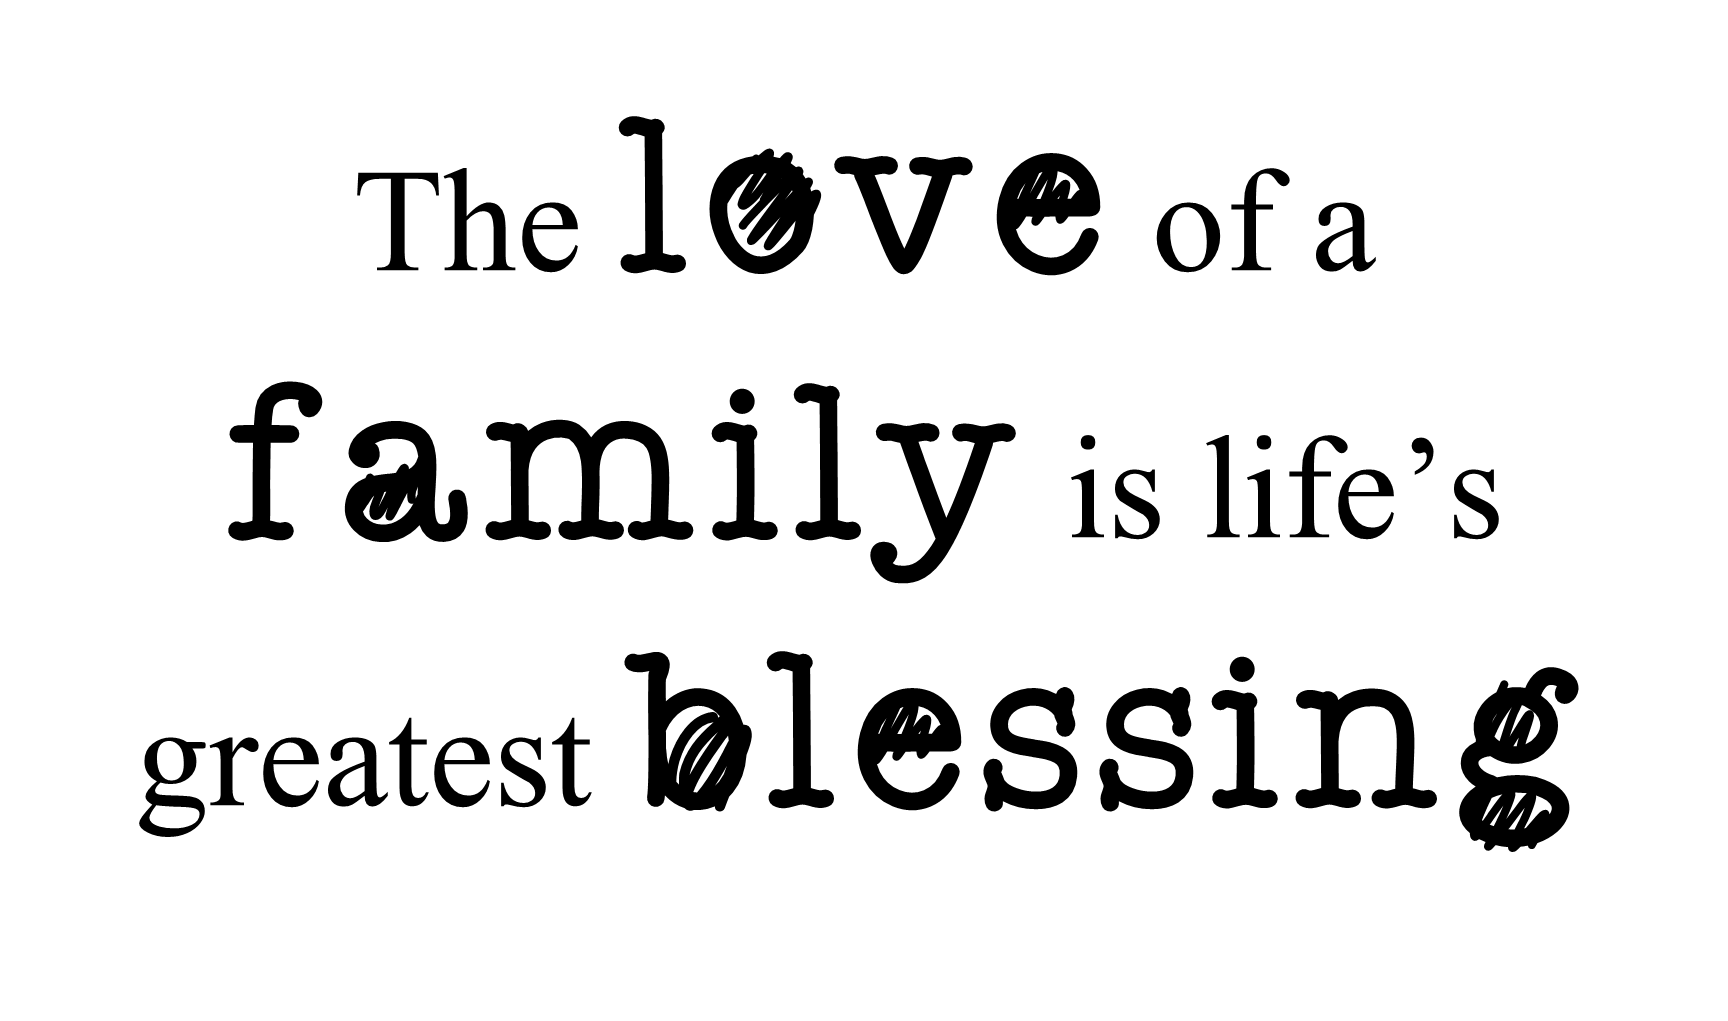 Family quotes png. Quote new the best